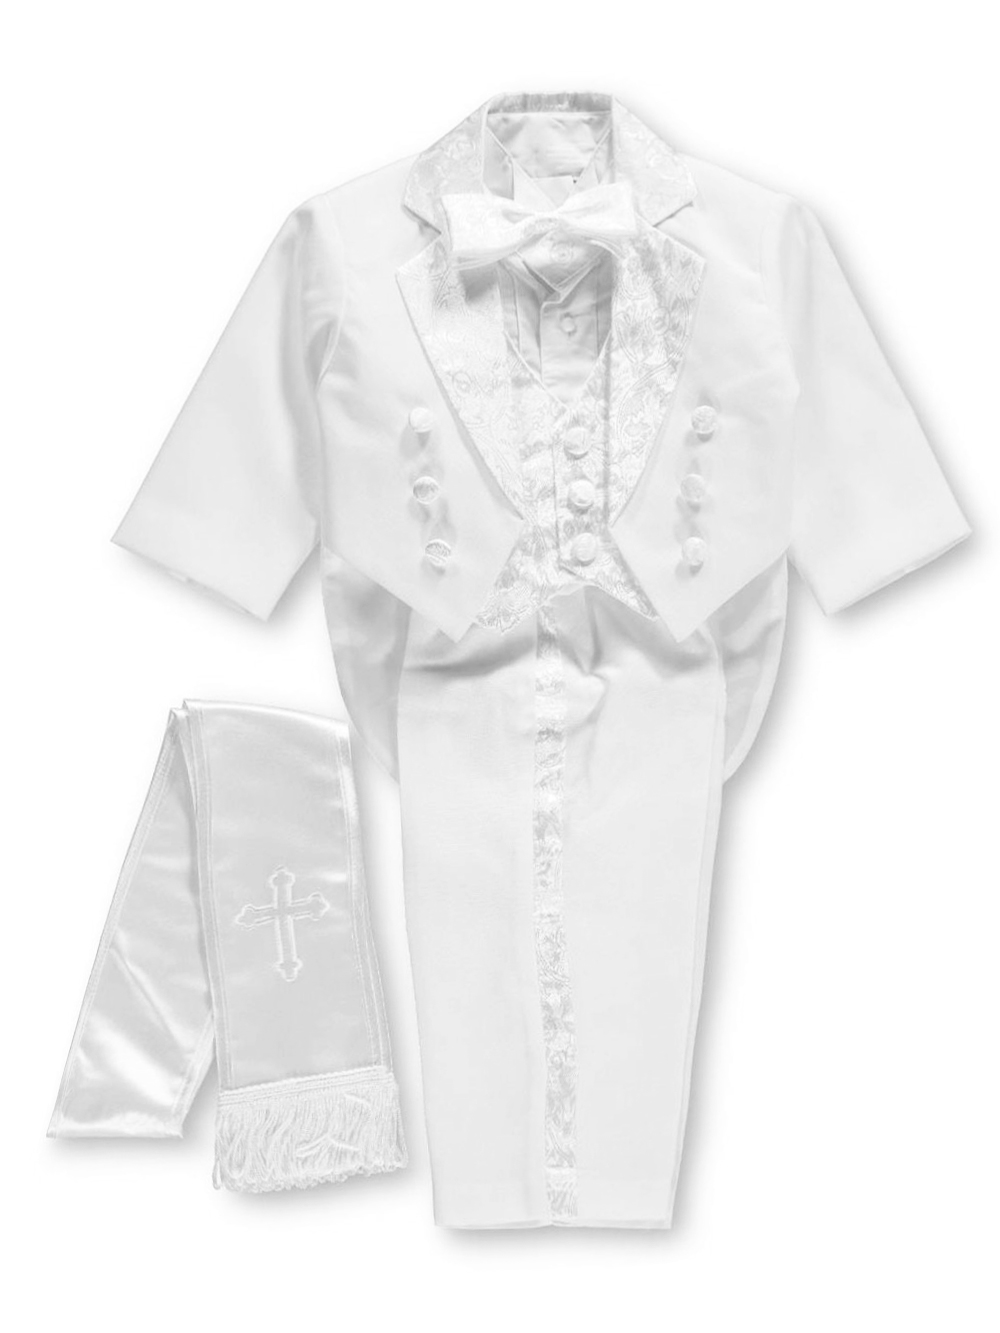 Pretty Me Embroidered 6-Piece Christening Tuxedo (Sizes 6M - 24M) - white, 6 months